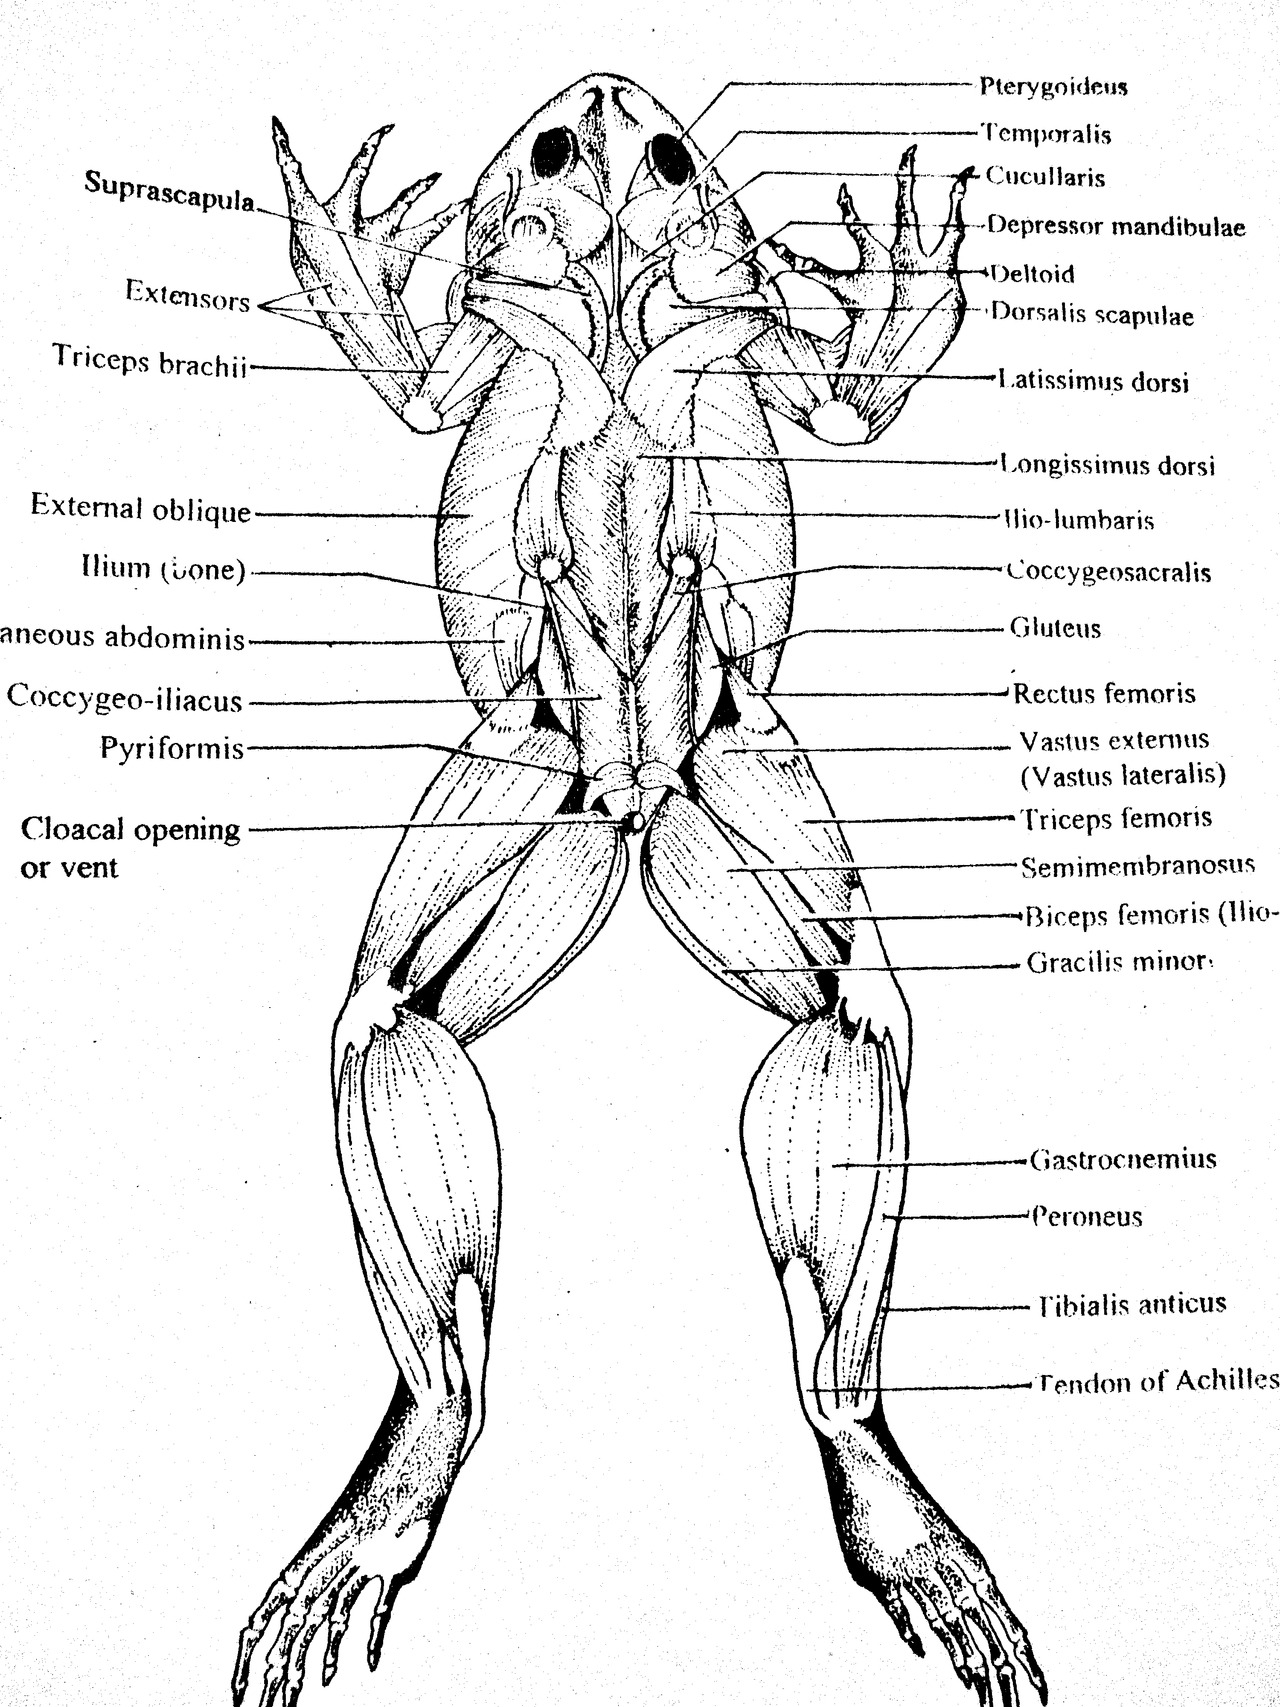 frog bone diagram 2001 chevy cavalier engine muscular system dorsal view clearly draw the line